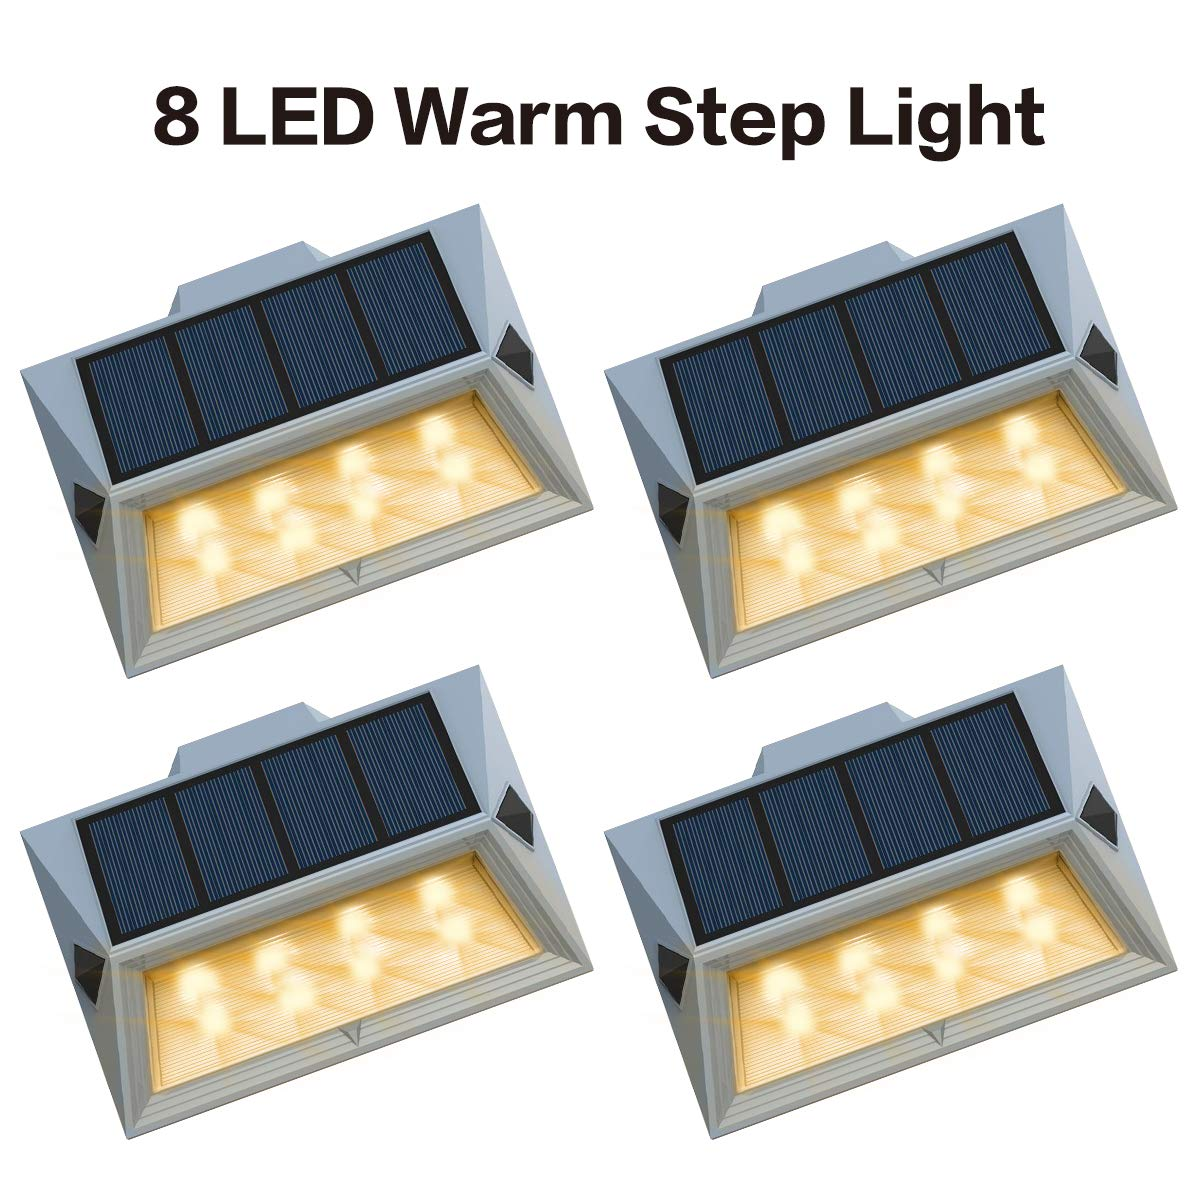 Roopure【Newest Version Warm 8 LED】Warm White Solar Deck Lights Outdoor Decorative Solar Step Lights Waterproof Lighting for Stair Garden Wall Paths Patio Decks Auto On/Off 4 Pack by Roopure